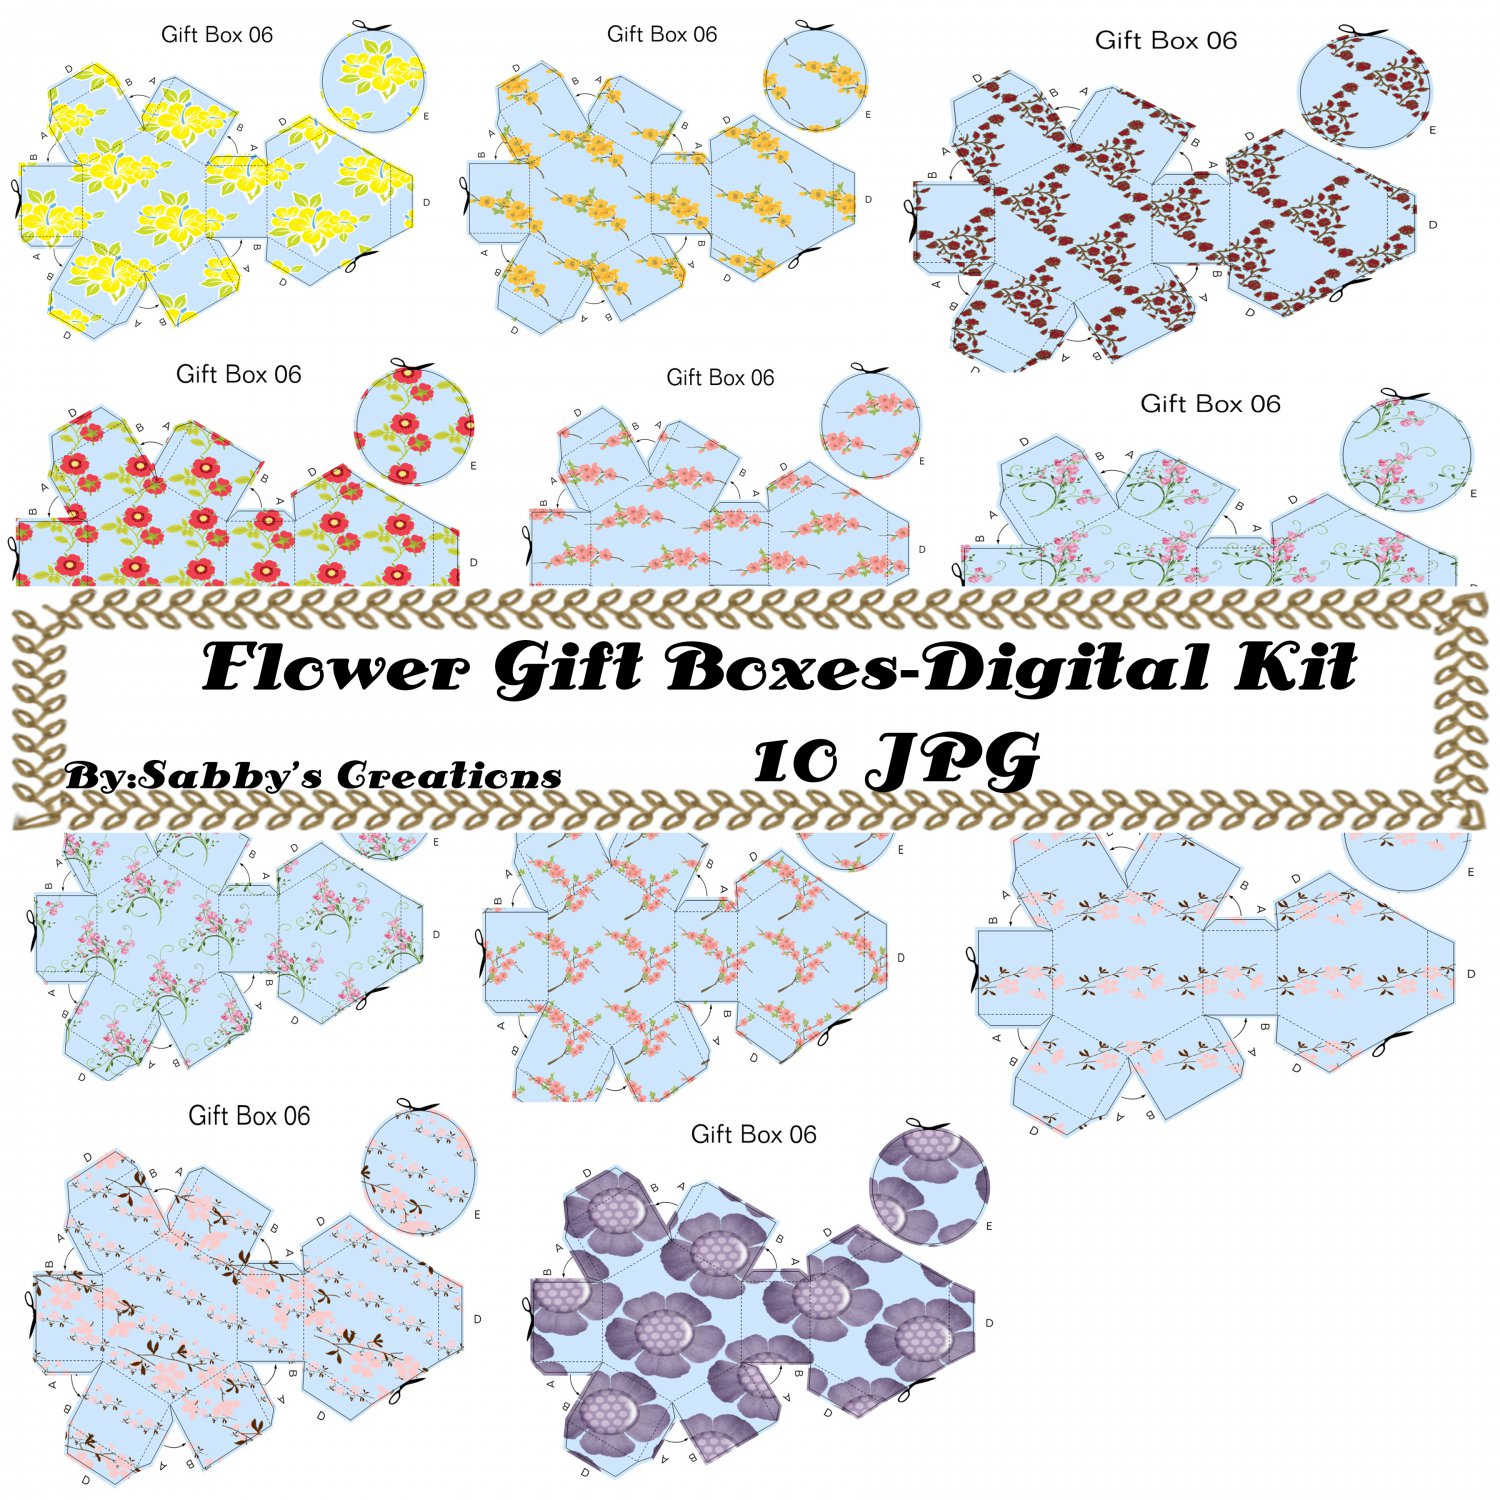 Flower Gift Box Digital Kit-Digtial Paper-Art Clip-Gift Tag-Jewelry-Mothers Day